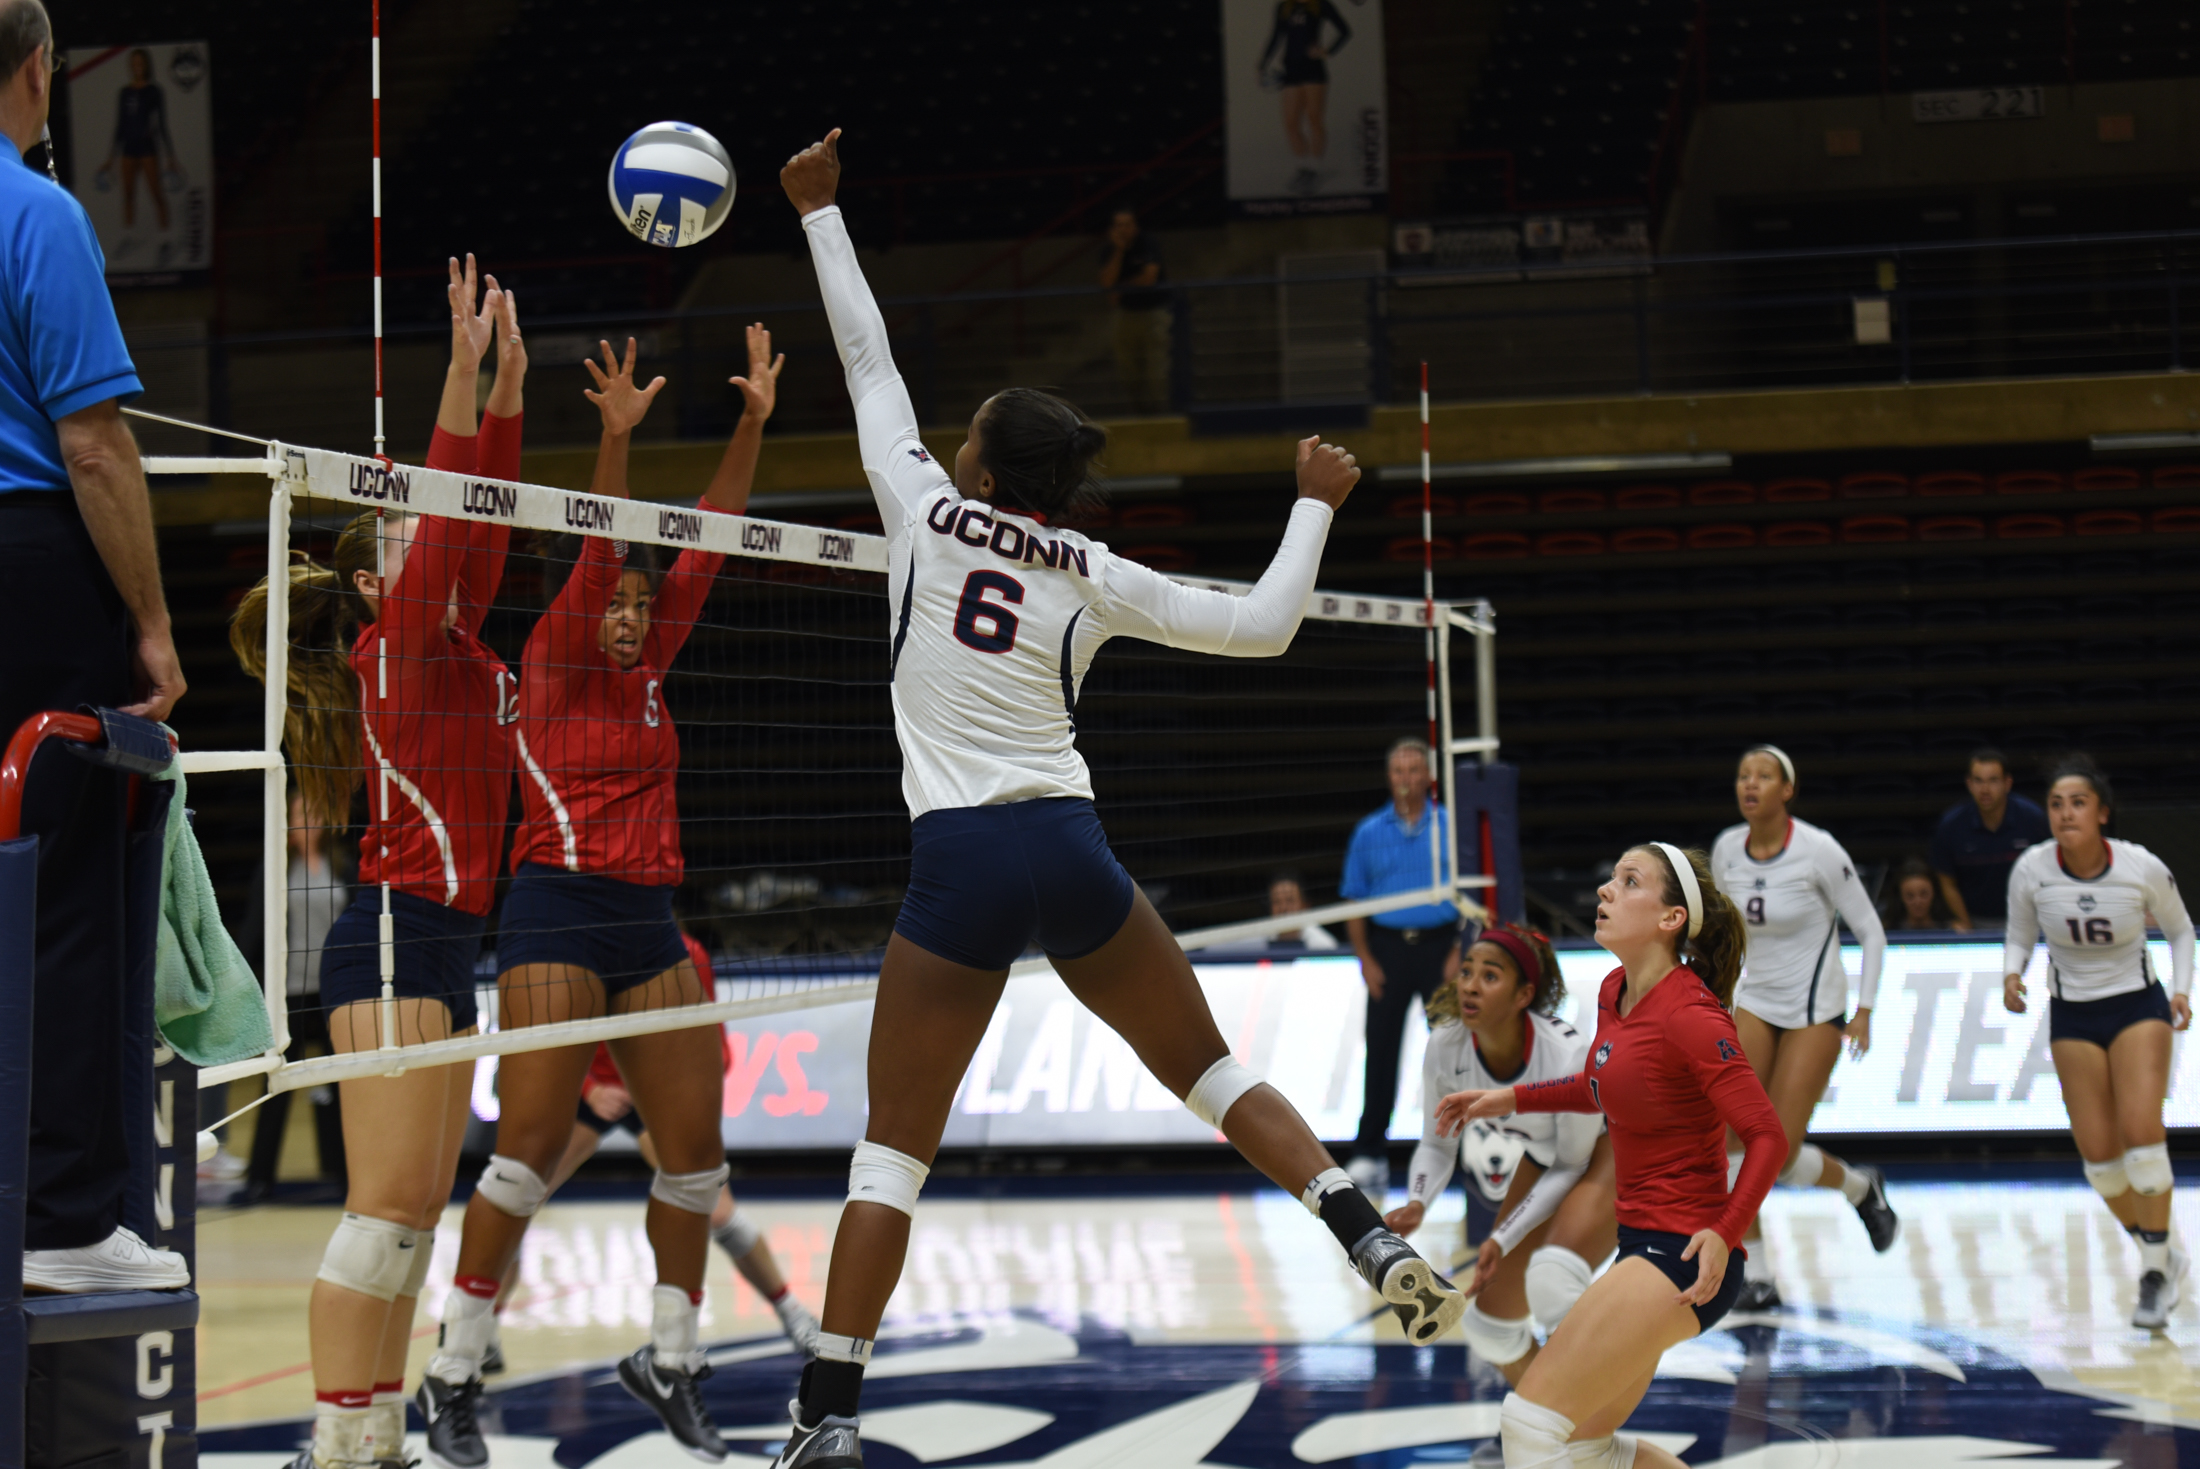 Outside hitter Kayla Williams (6) spikes the ball during UConn's 3-0 set shut-out of the University of Houston on Friday, Sept. 30, 2016. The Huskies continue conference play against Temple on Wednesday, Sept. 28, 2016 in Gampel Pavilion.(Charlotte Lao/The Daily Campus)